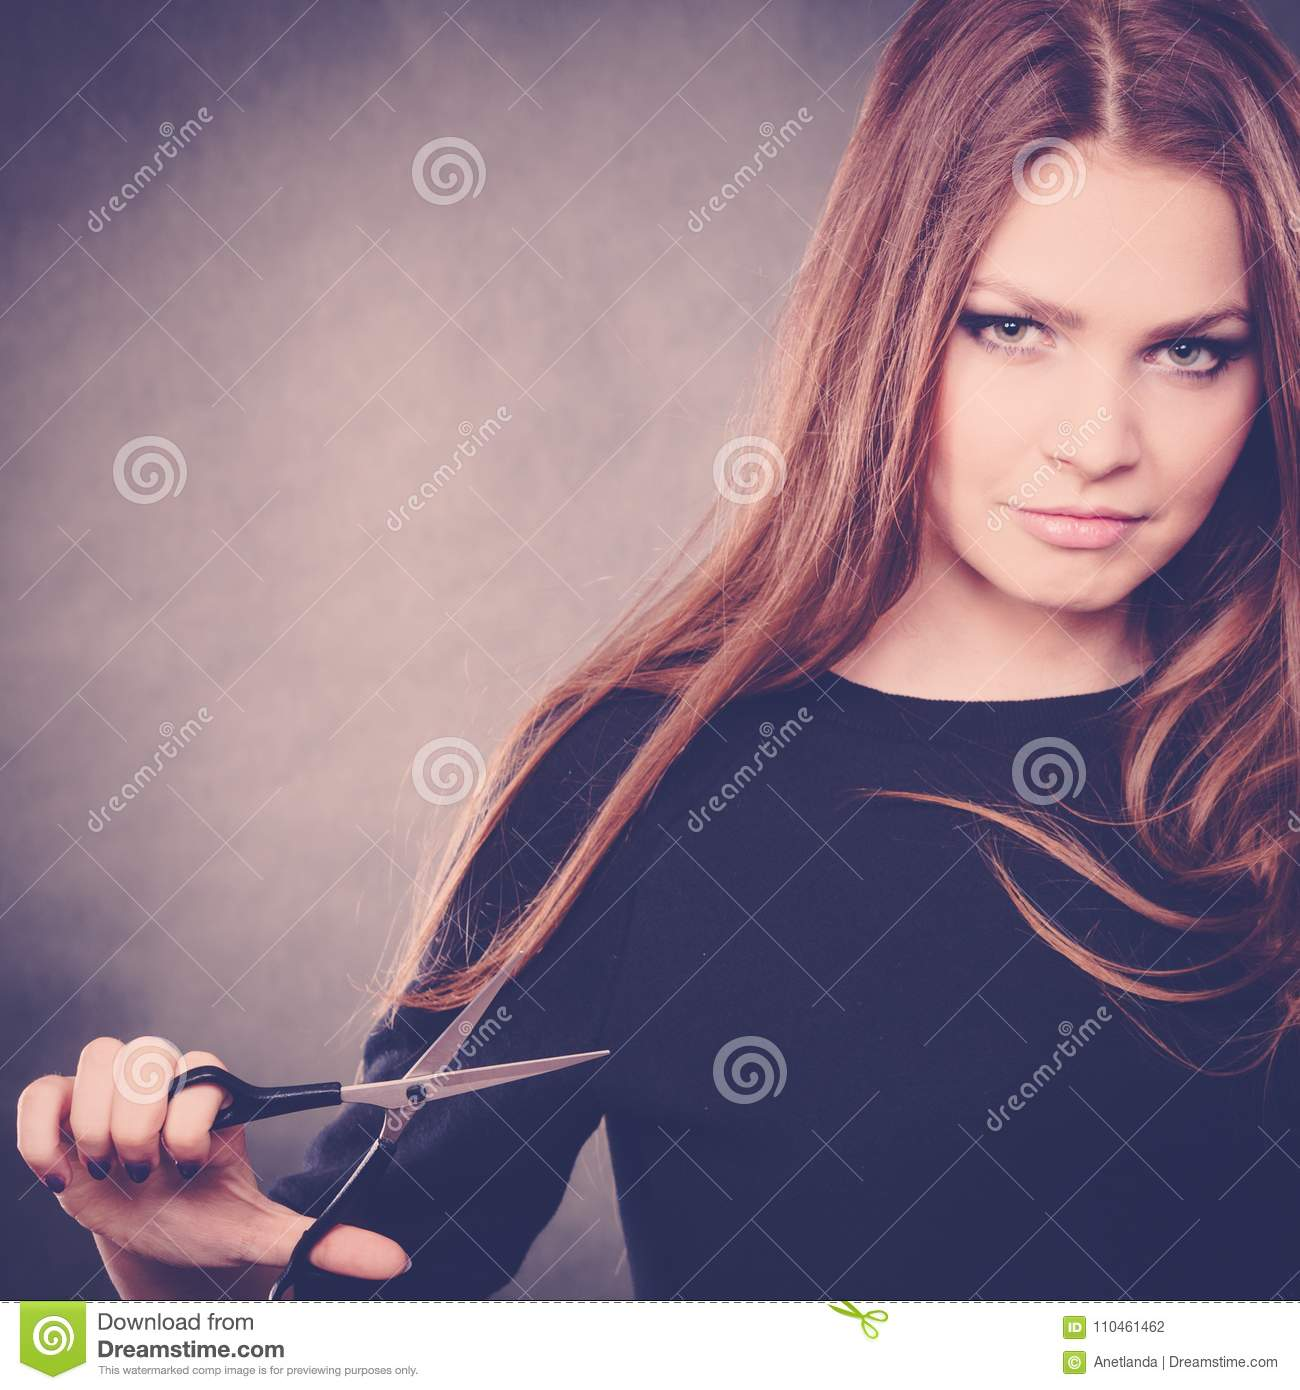 Female Hairstylist Barber With Scissors Stock Photo Image Of